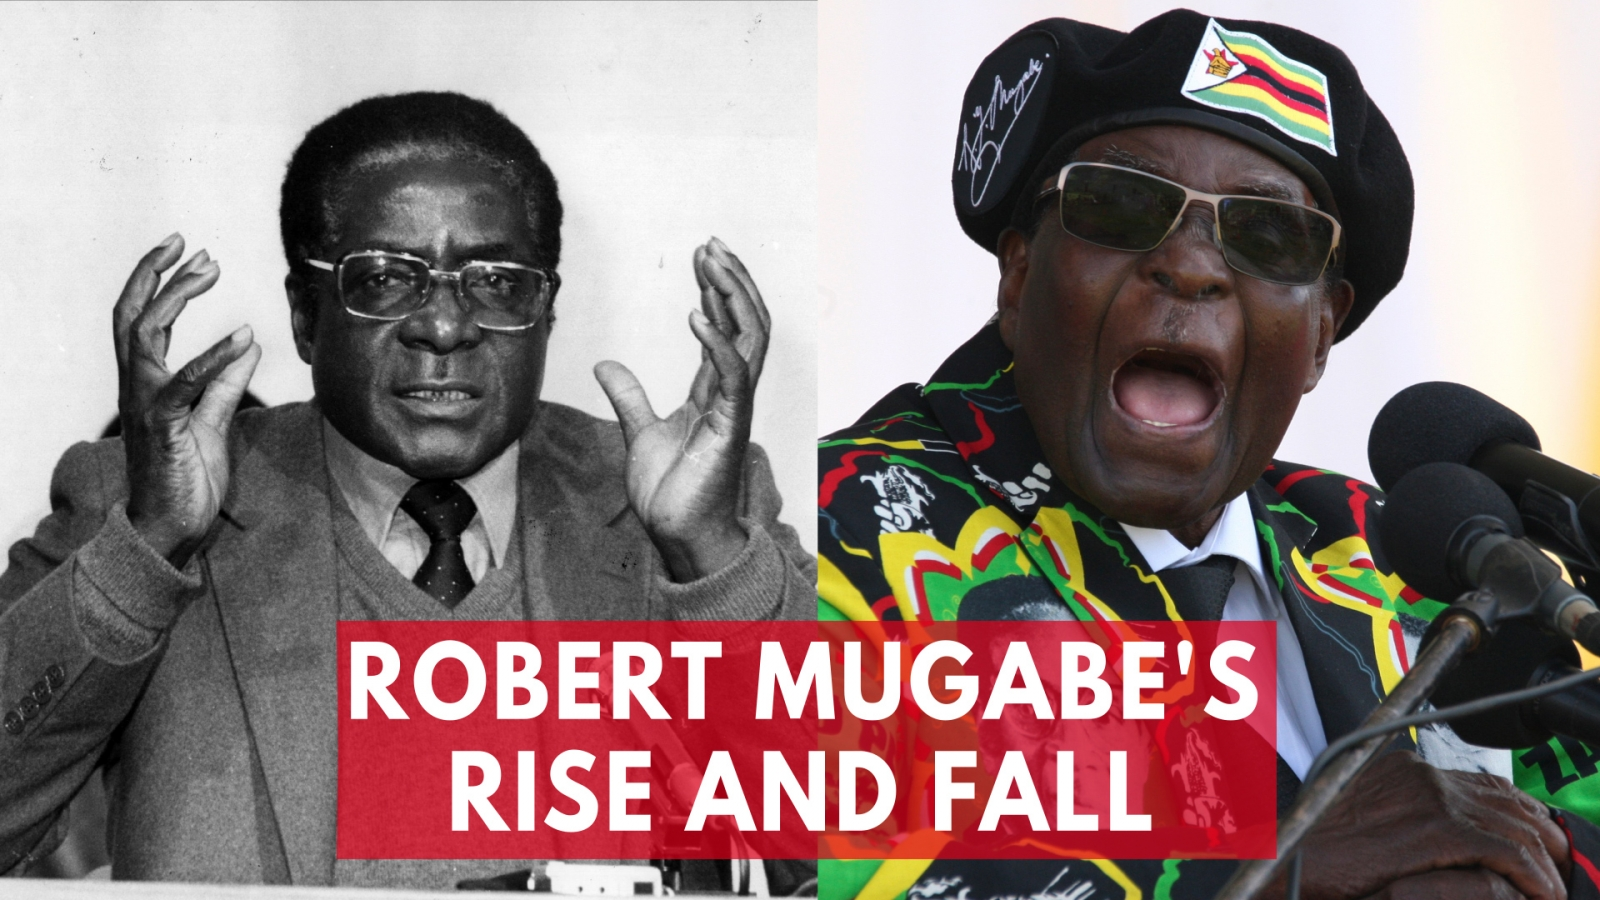 robert mugabes power Watch video zimbabwe's president robert mugabe addressed the nation sunday in a broadcast that was widely expected to feature his resignation but which ended without him announcing his intention to step aside after 37 years in power instead, the world's oldest head of state — he is 93 — said he.